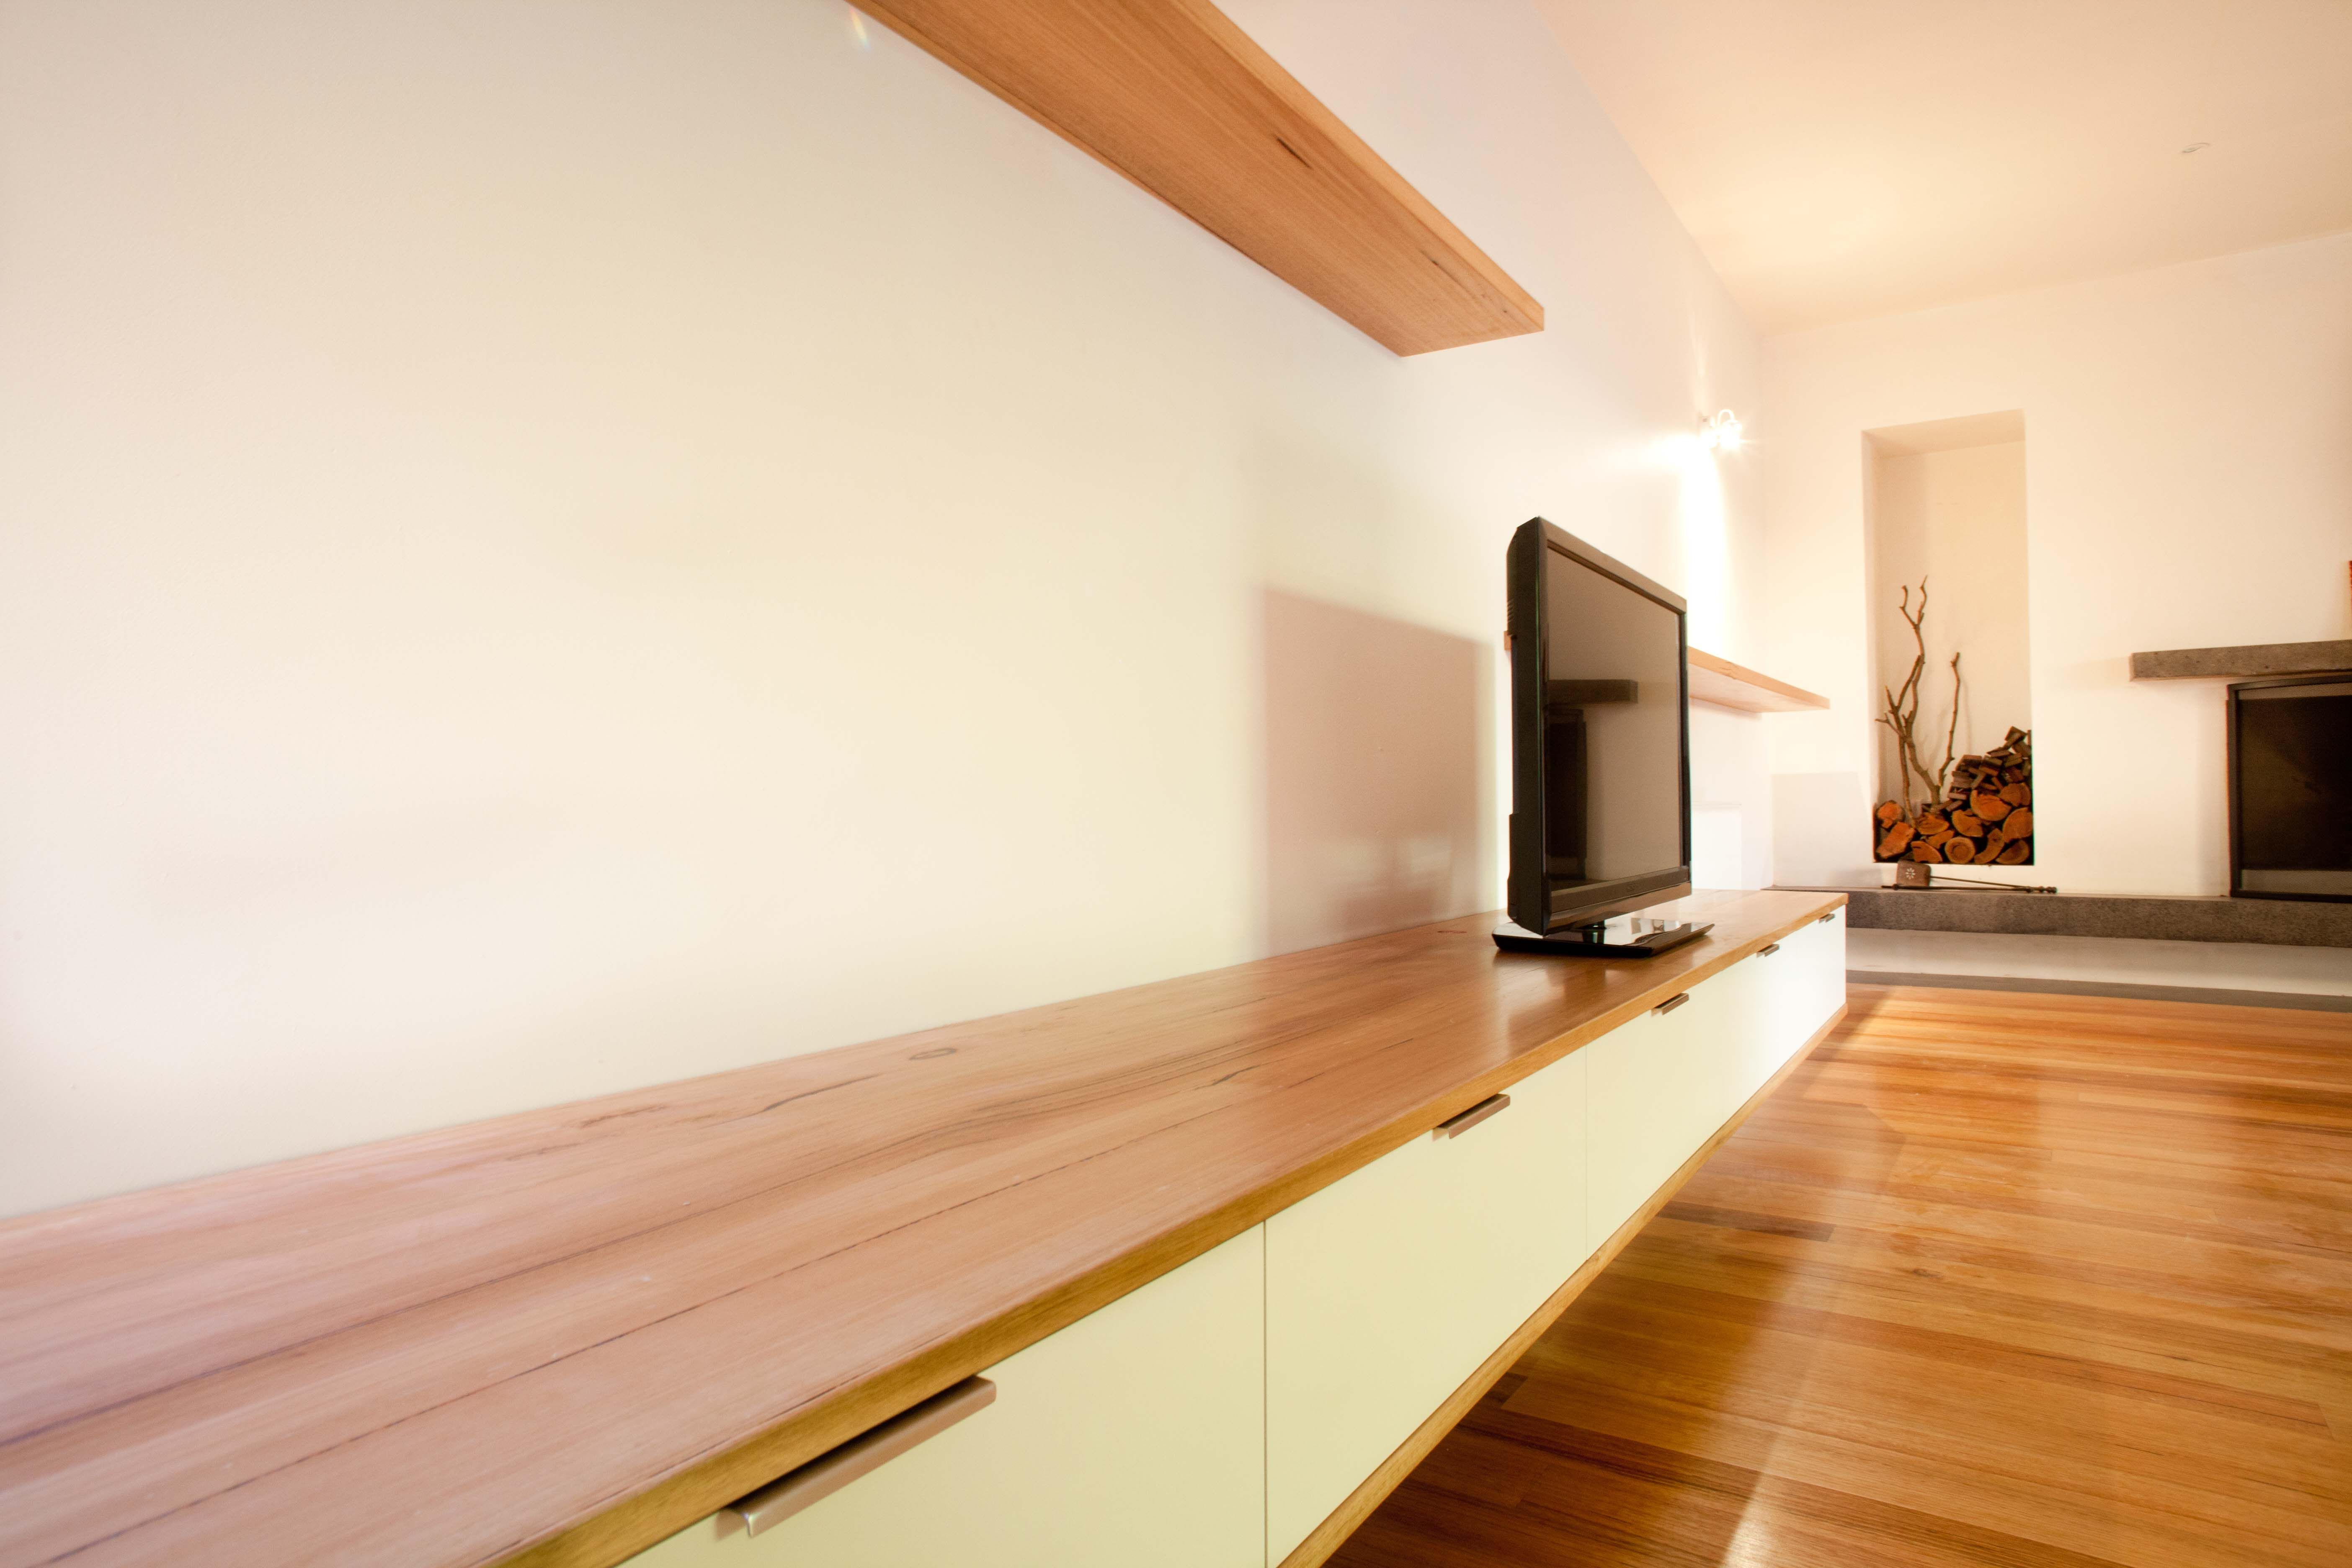 floating tv units | Timber, 2pac, Working with Wood, Amazing ...